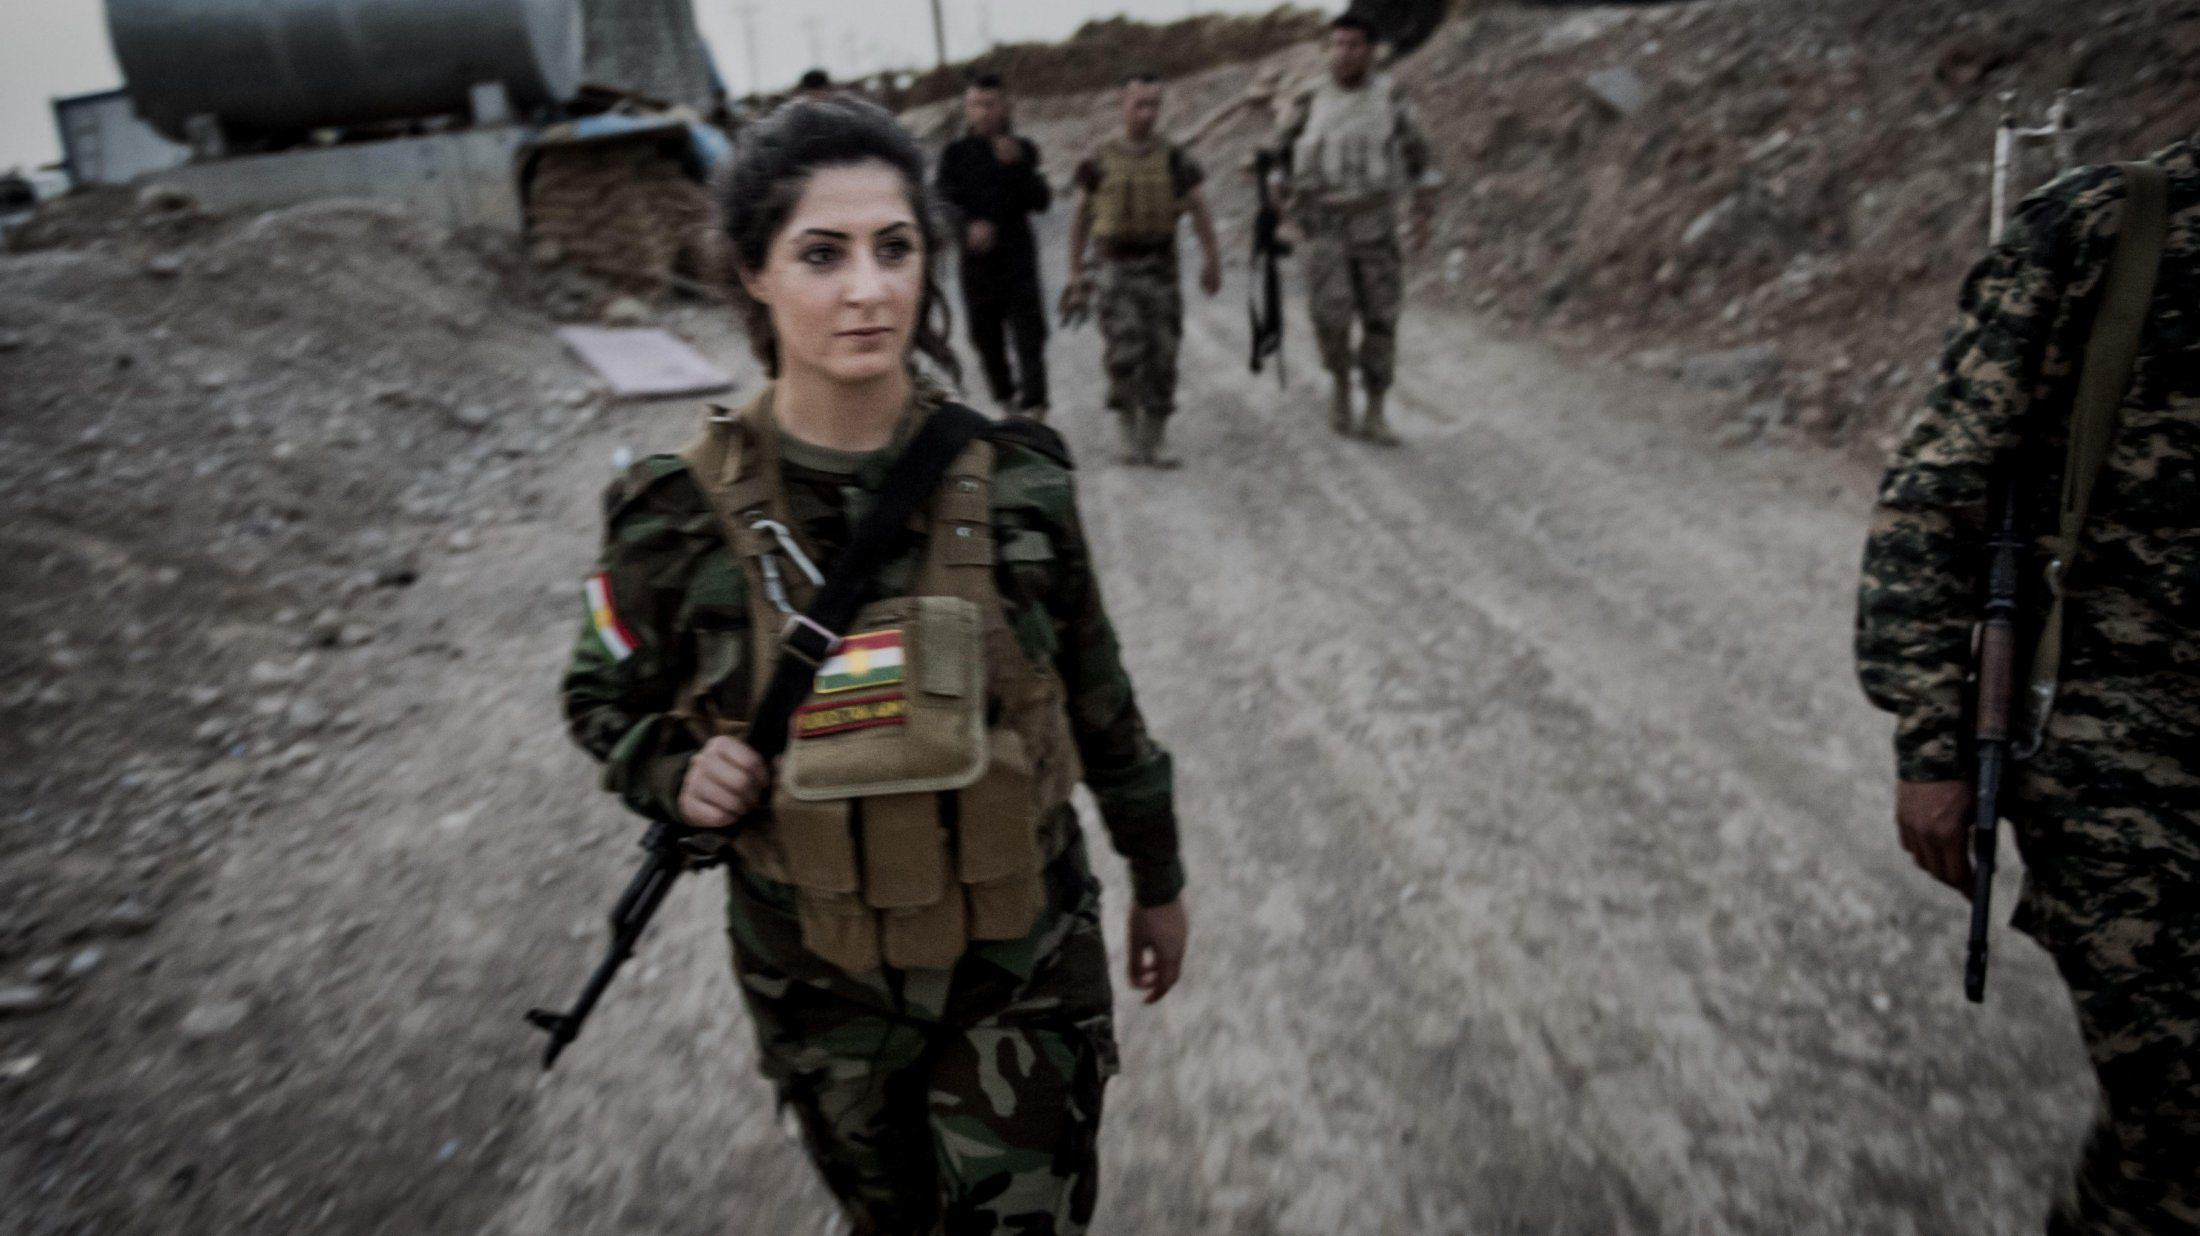 Woman Dropped Out Of College To Fight ISIS, Has Passport Confiscated %name